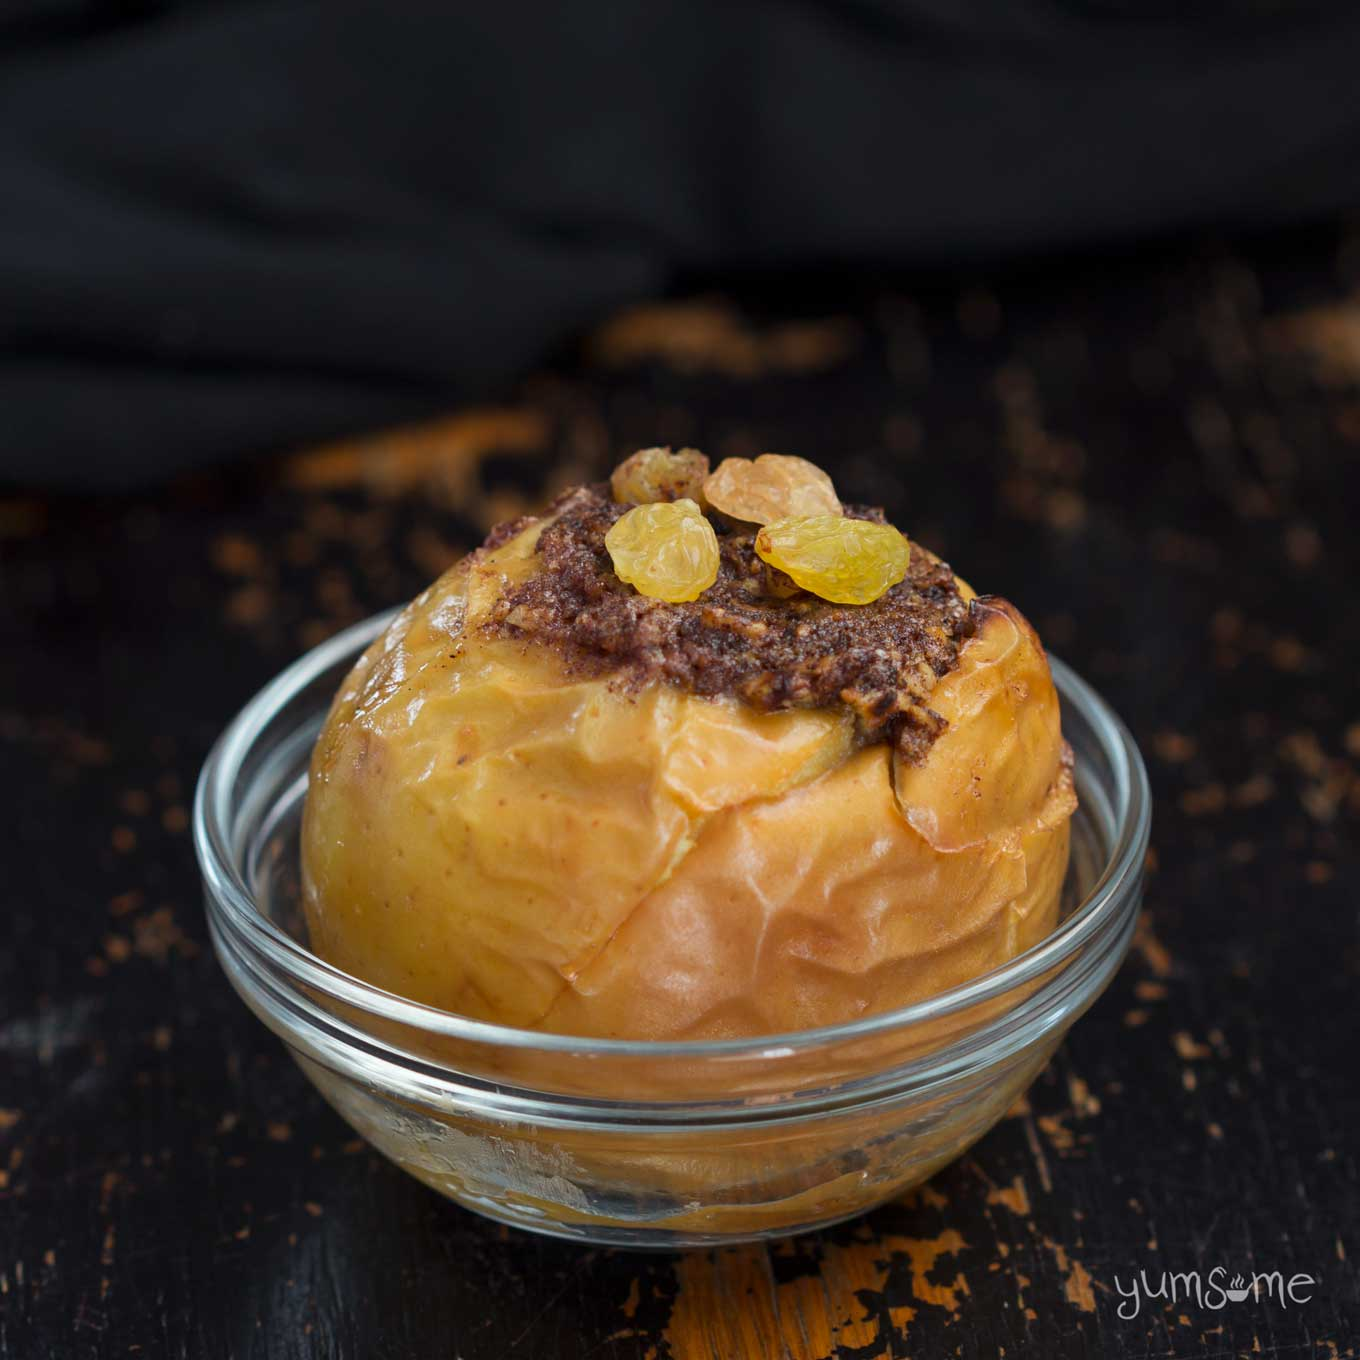 a baked apple | yumsome.com